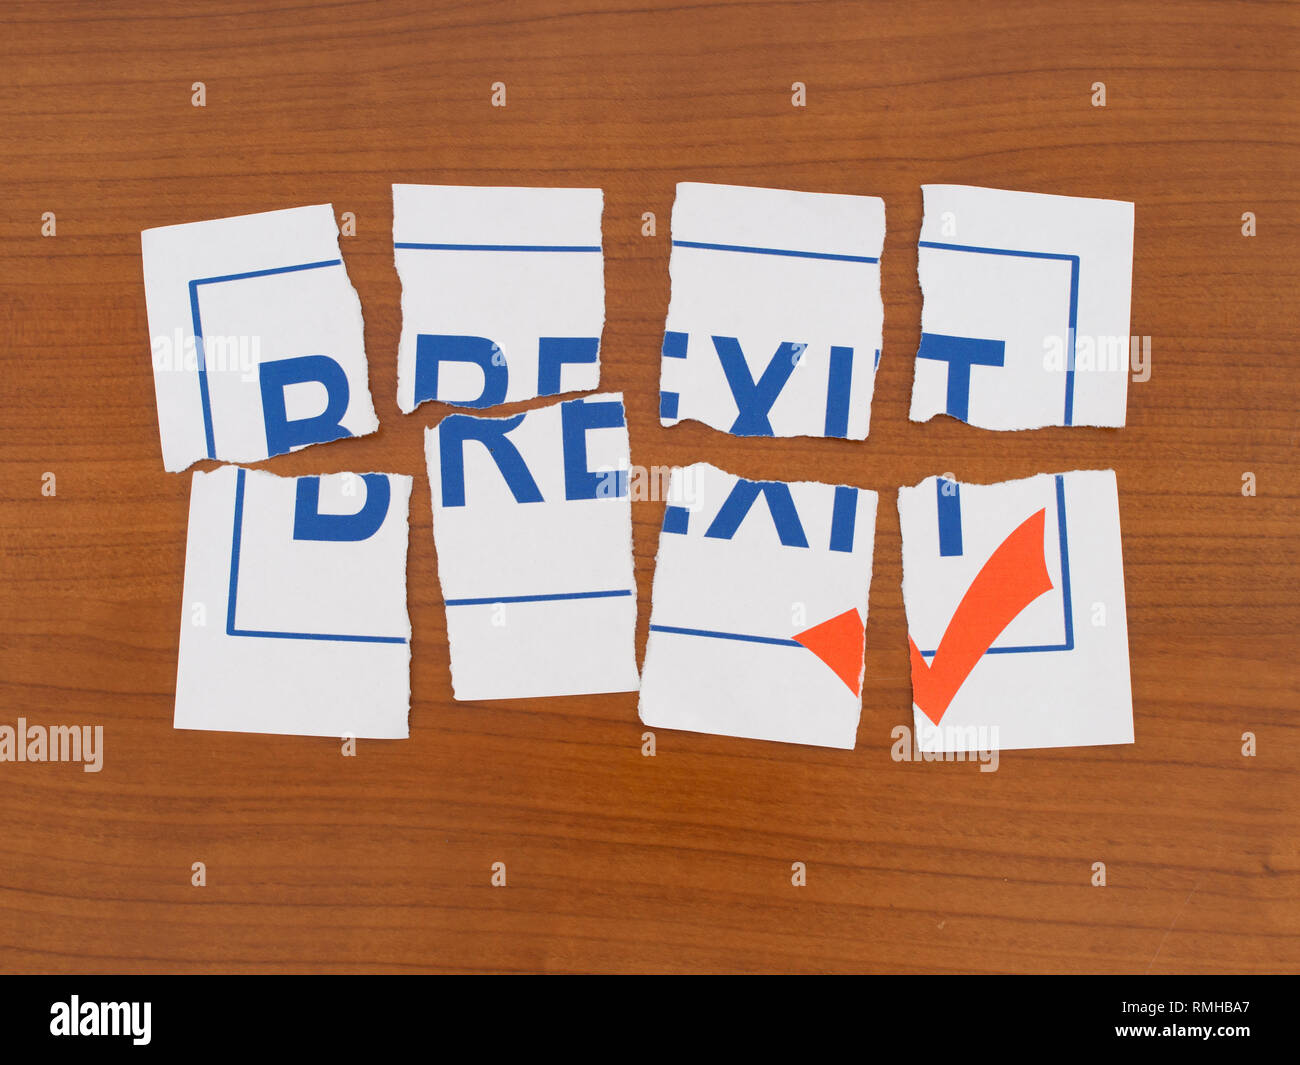 Brexit in shreds, puzzle. UK EU politics metaphor or concept. - Stock Image